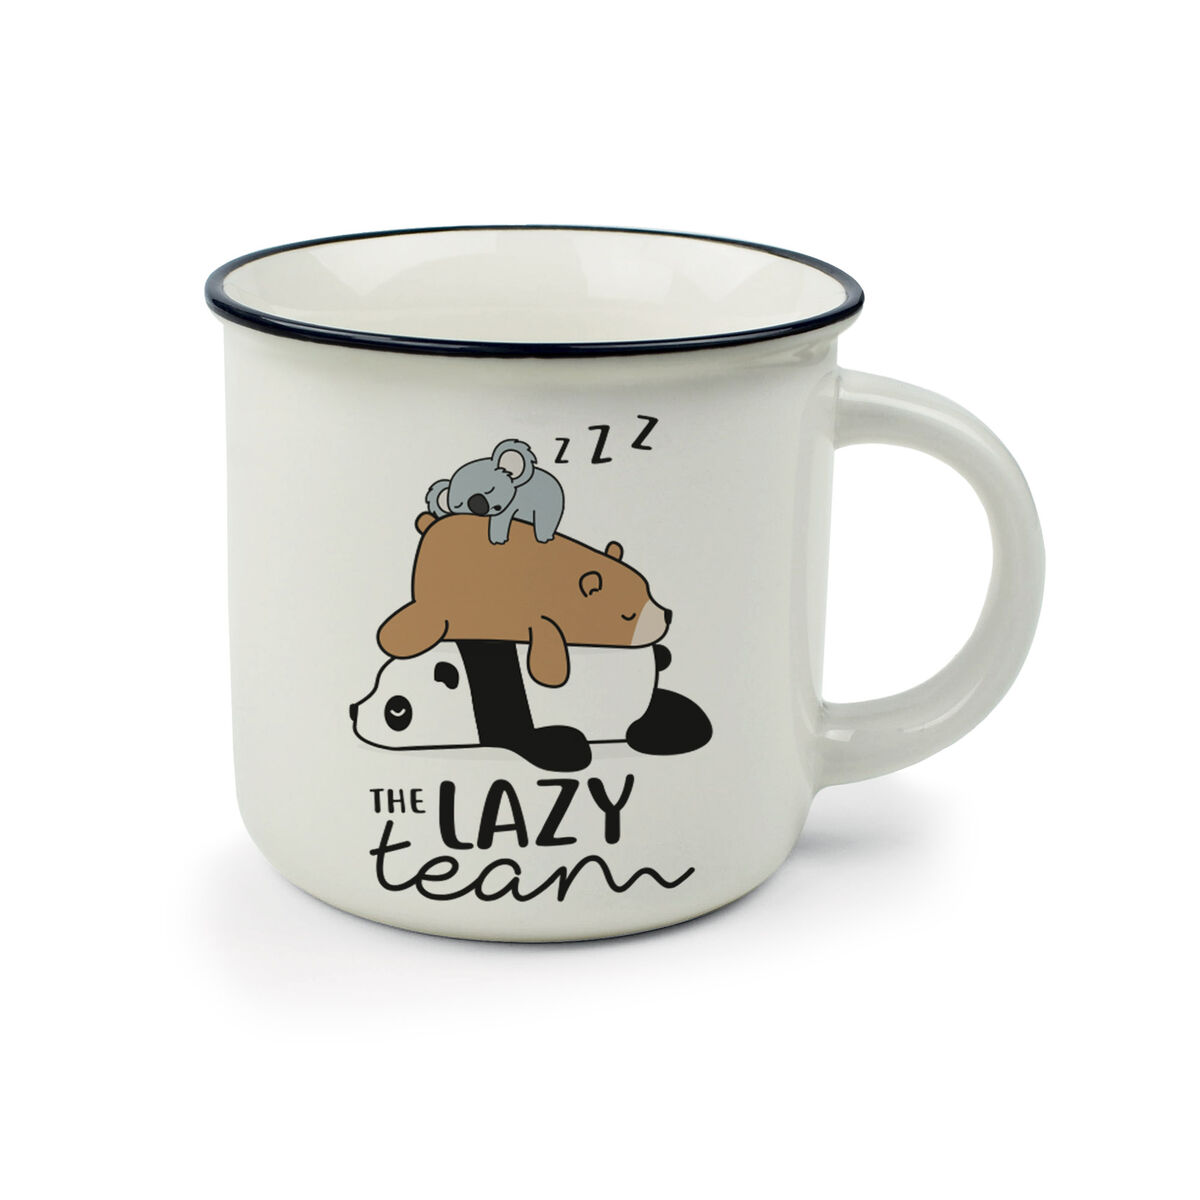 Cup-Puccino - Porcelain Mugs, , zoom